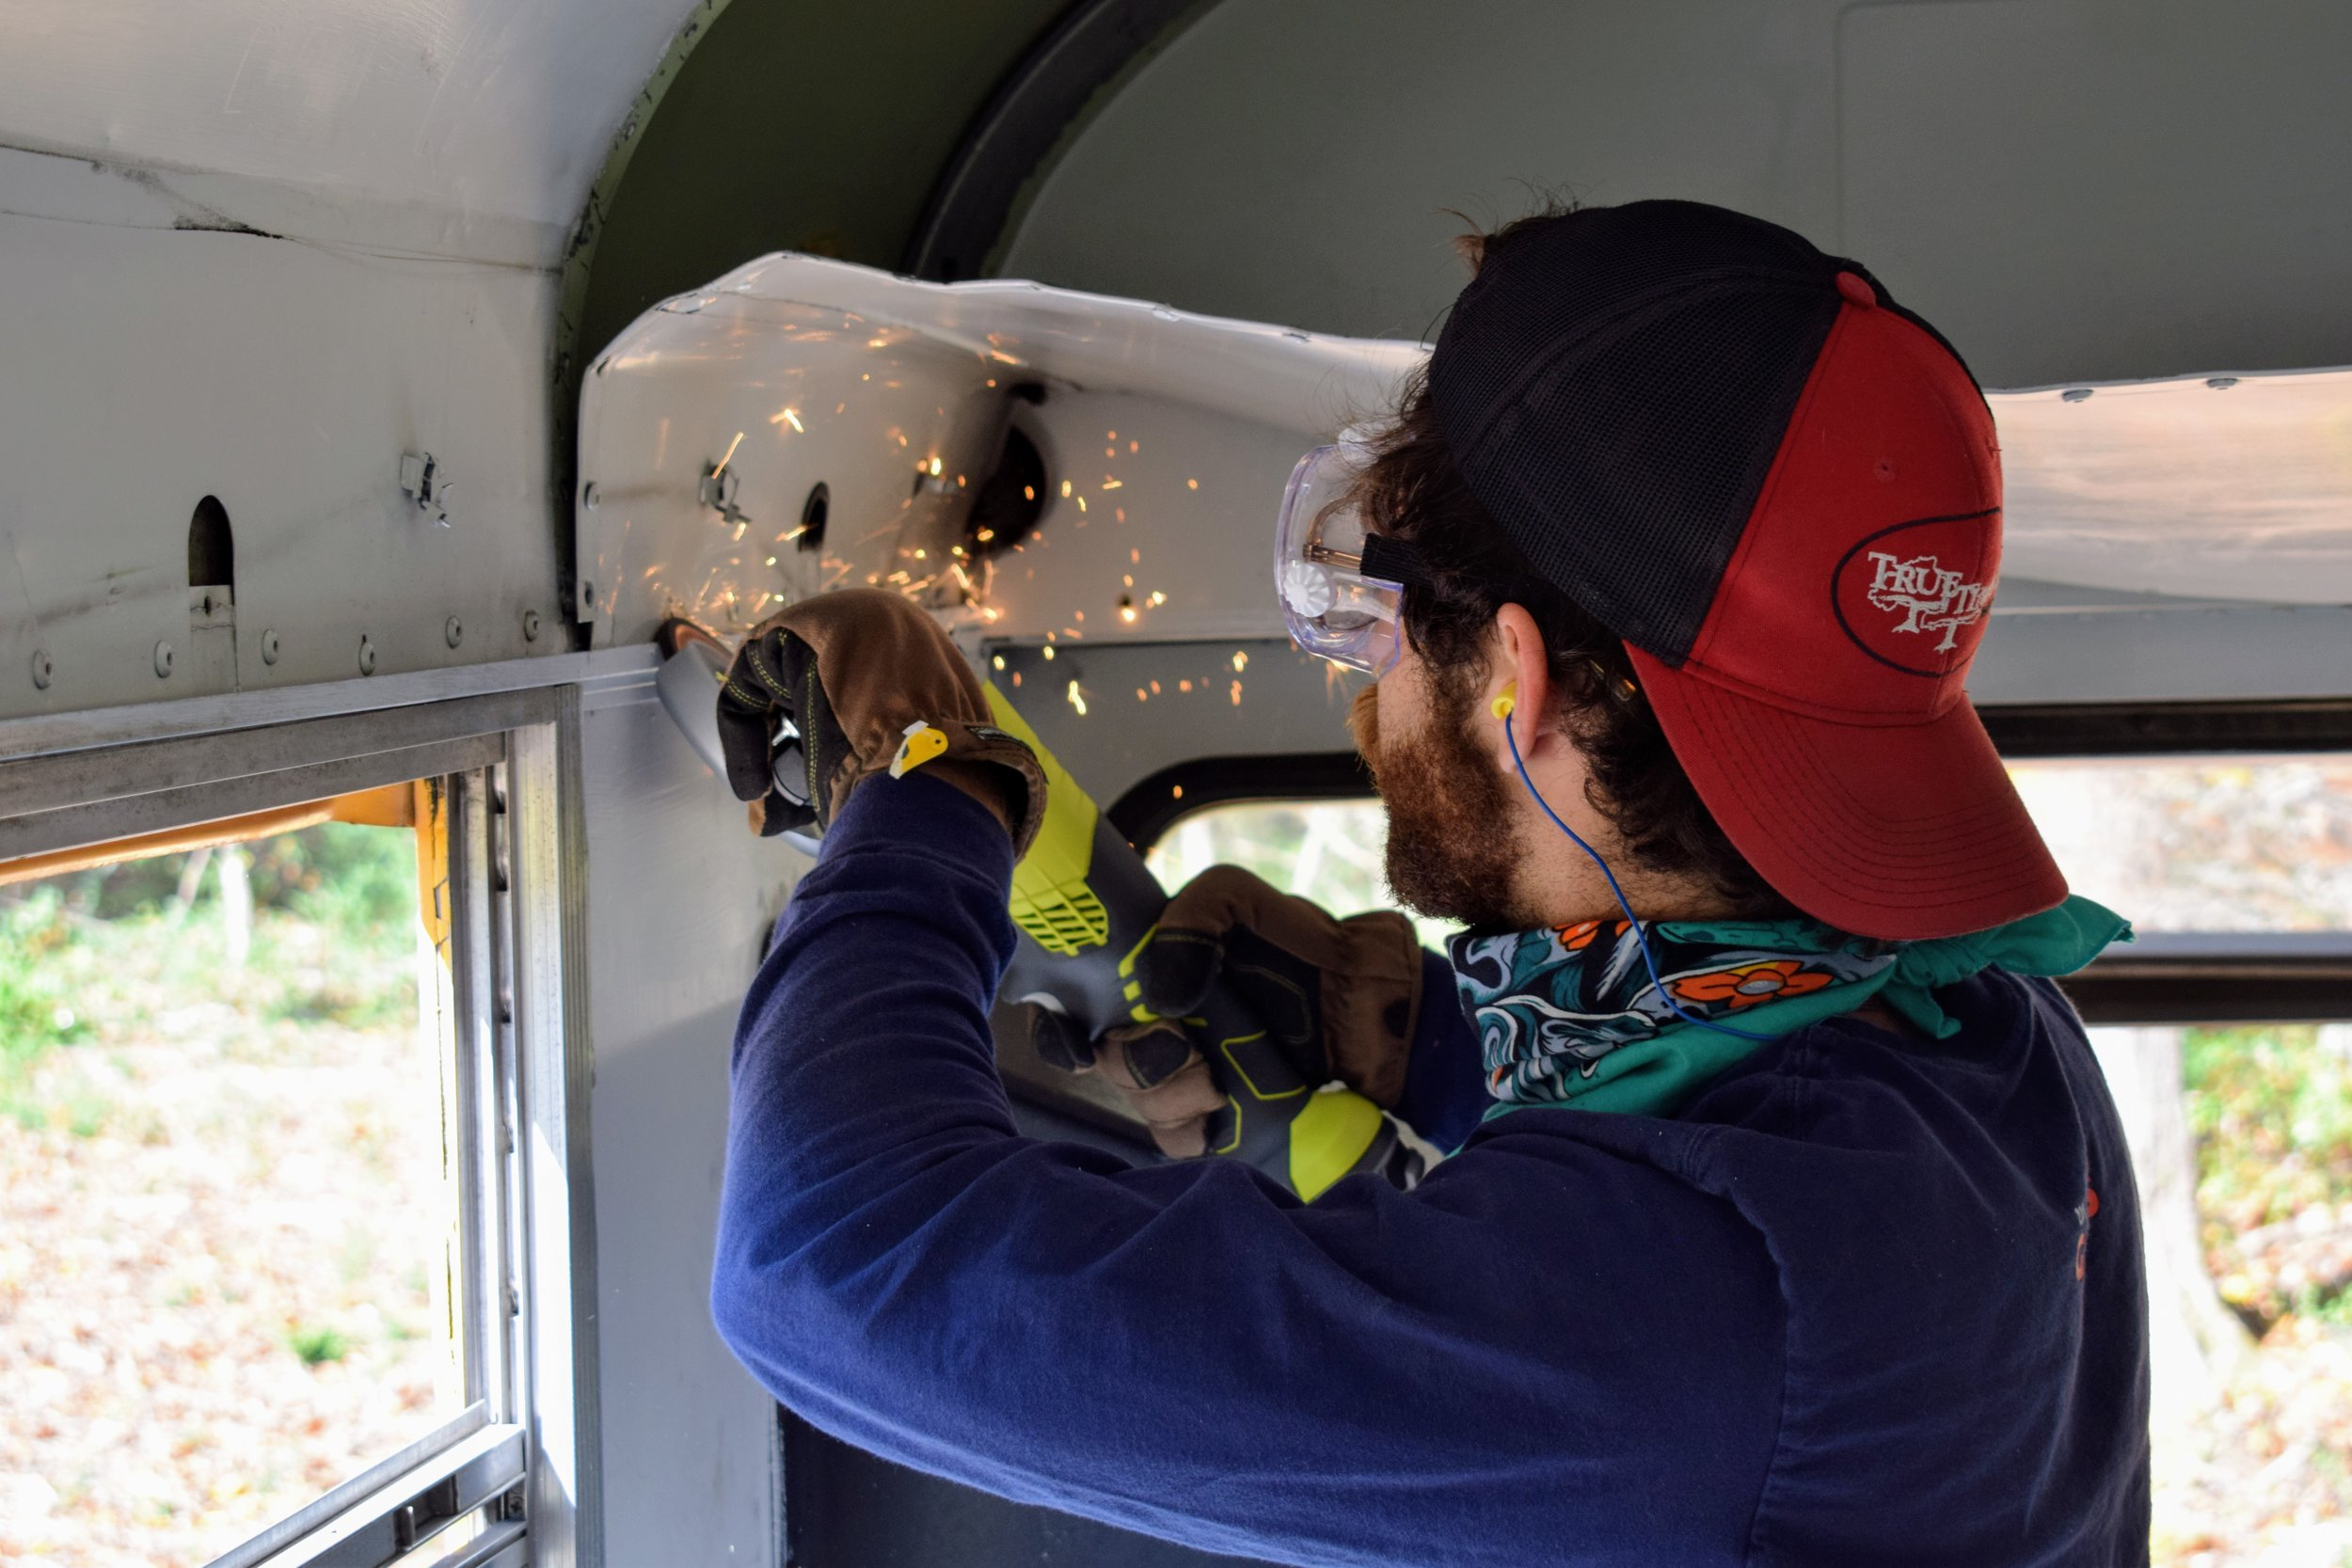 Emmett grinding off stripped screws on the ceiling panels of our bus.